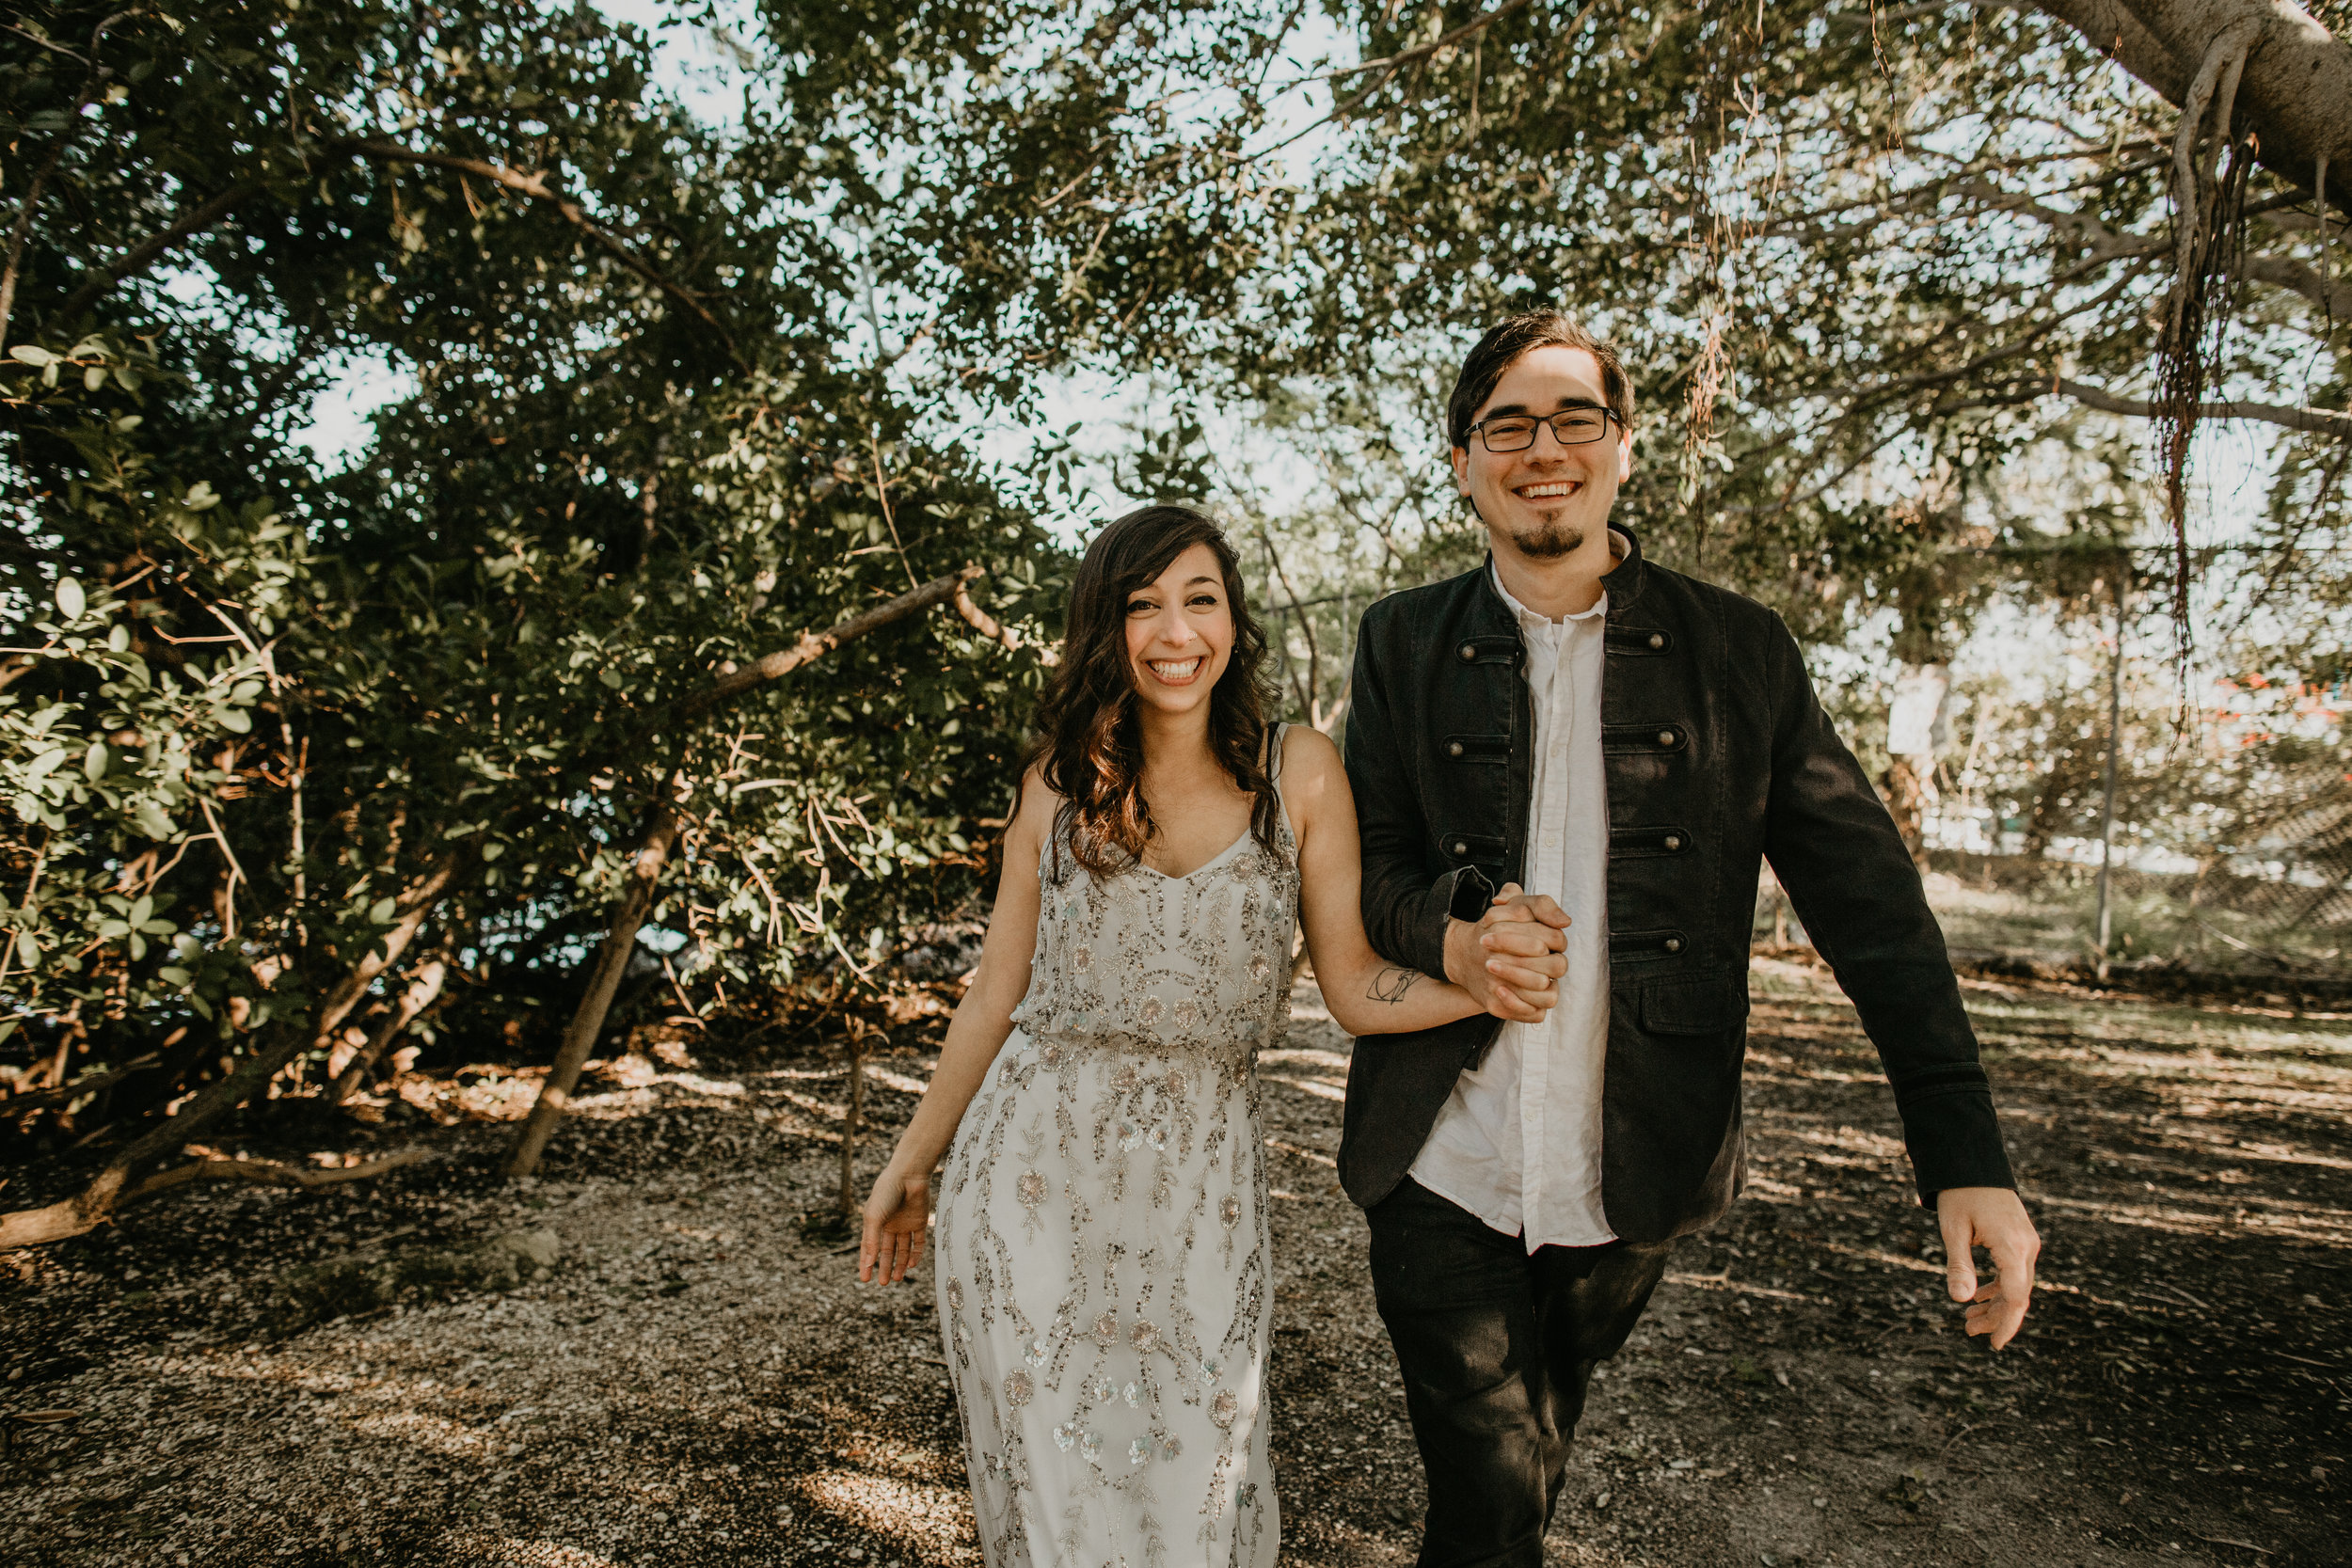 Ballast Point Park Tampa Florida-engagement Session-Moji and Kyle5.JPG